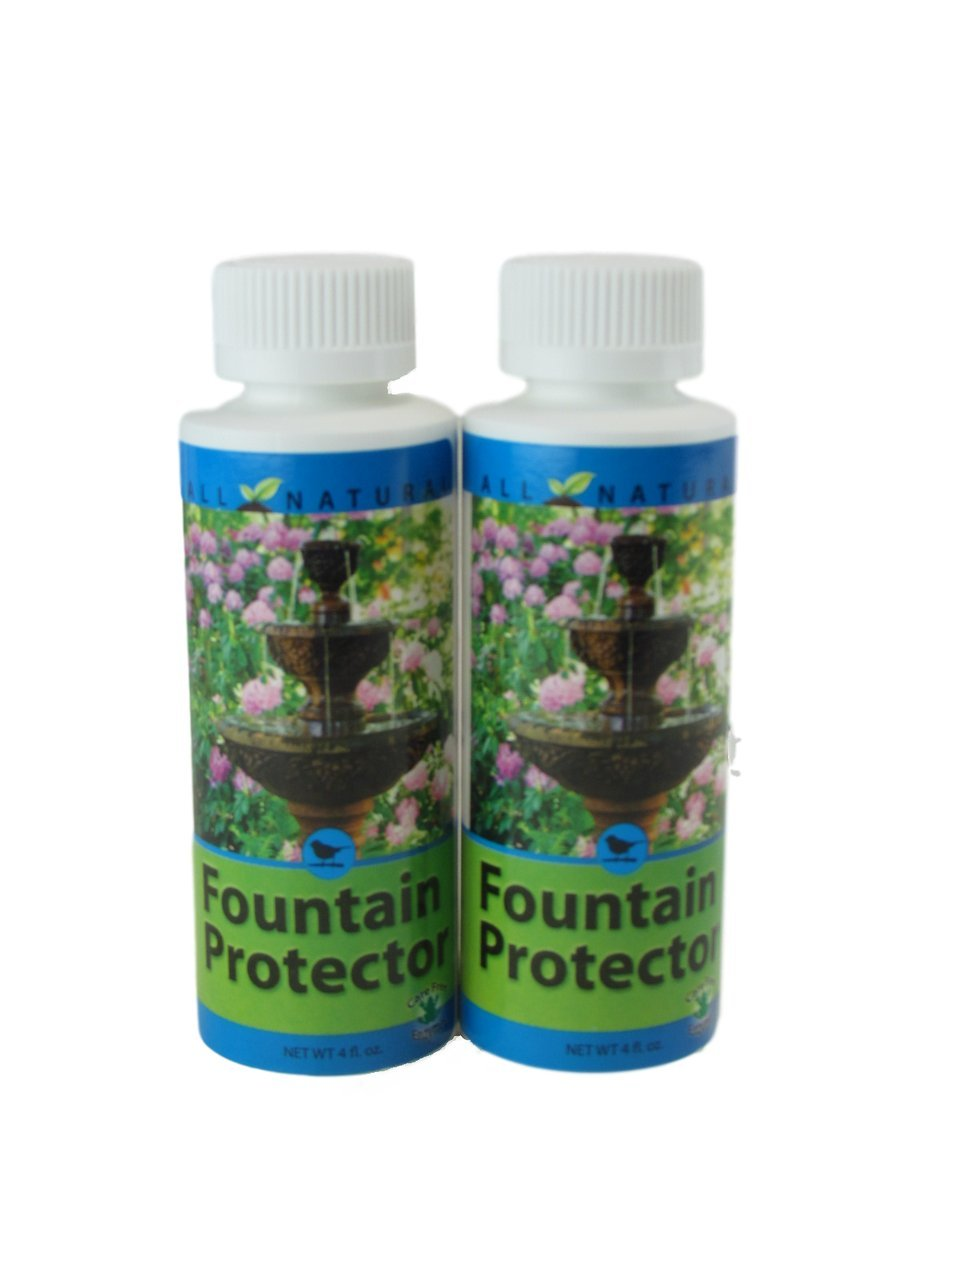 2 Pack 4 Oz Care Free Enzymes Fountain Protector Made in USA 95663D